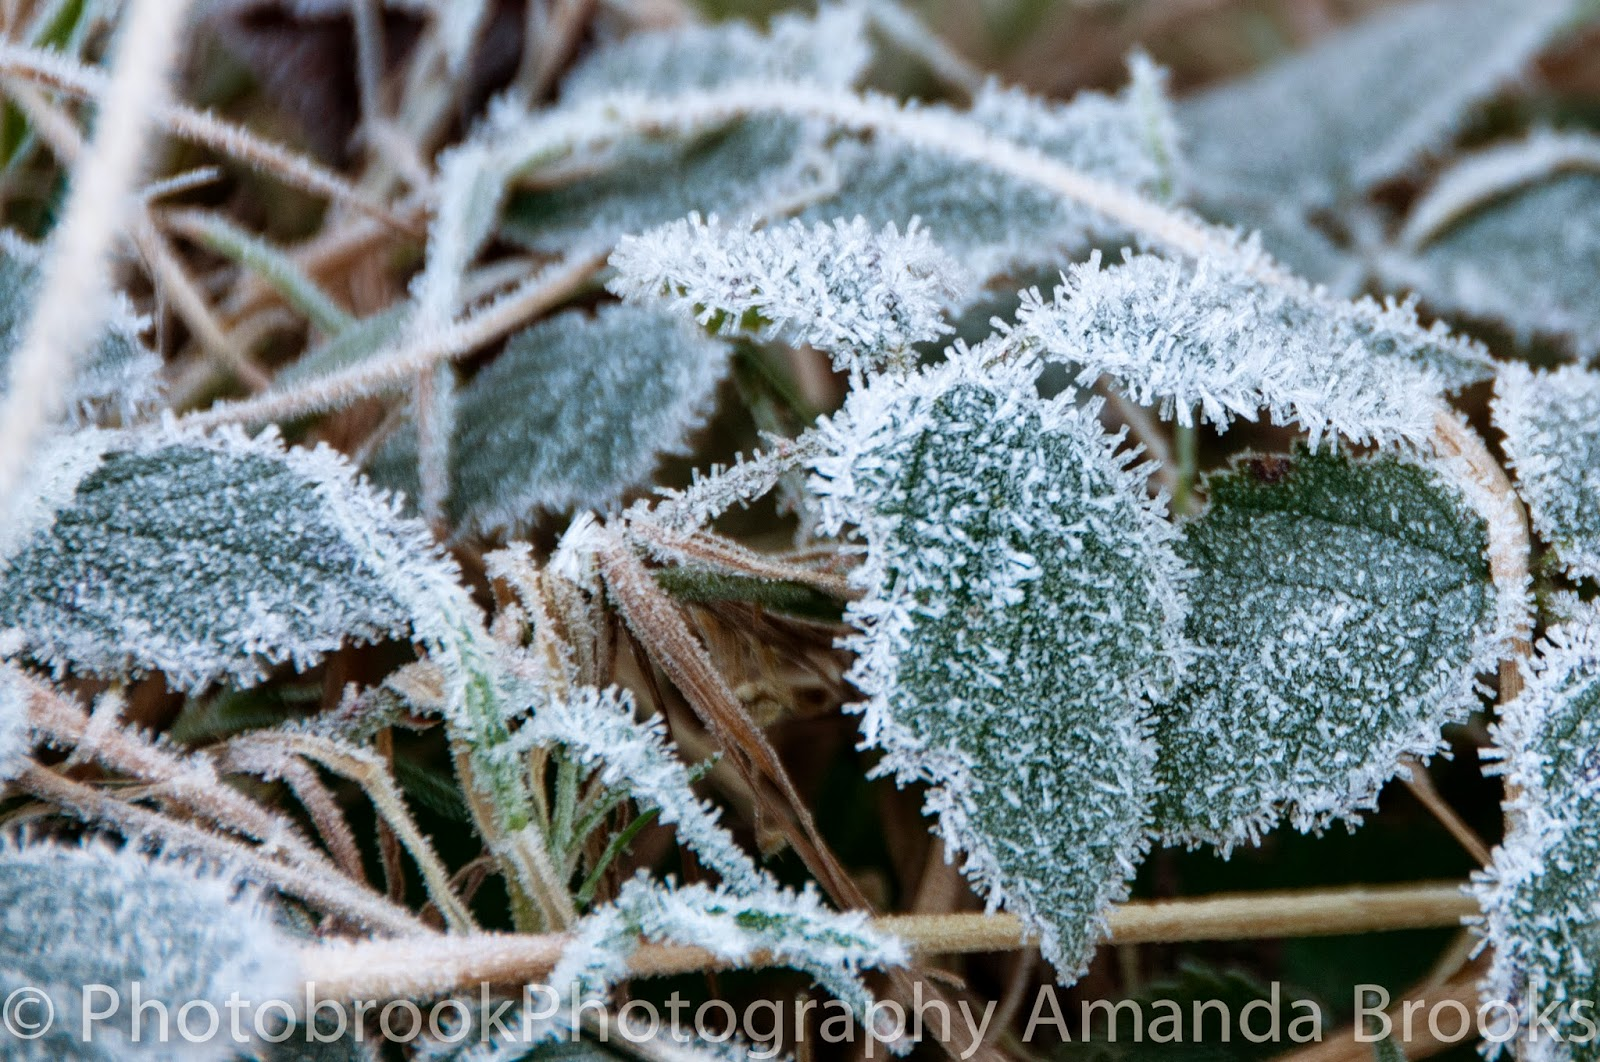 Frost forming on plants